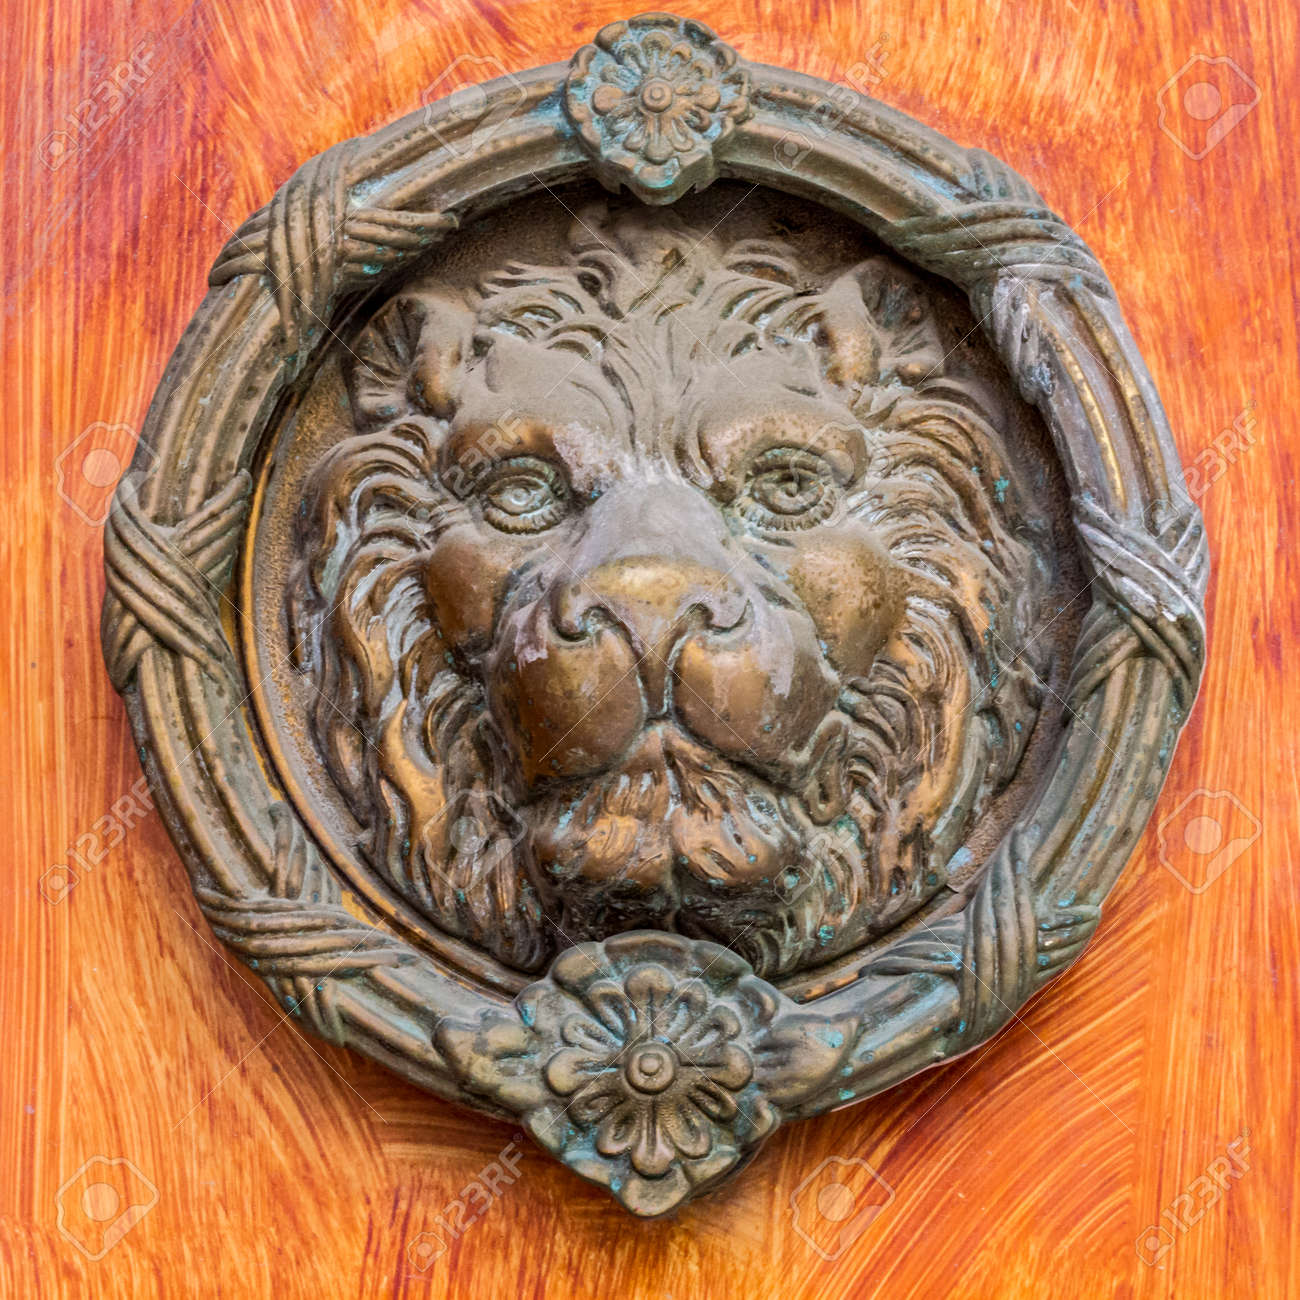 Vintage Brass Door Knocker Lion Head Decorative Detail On